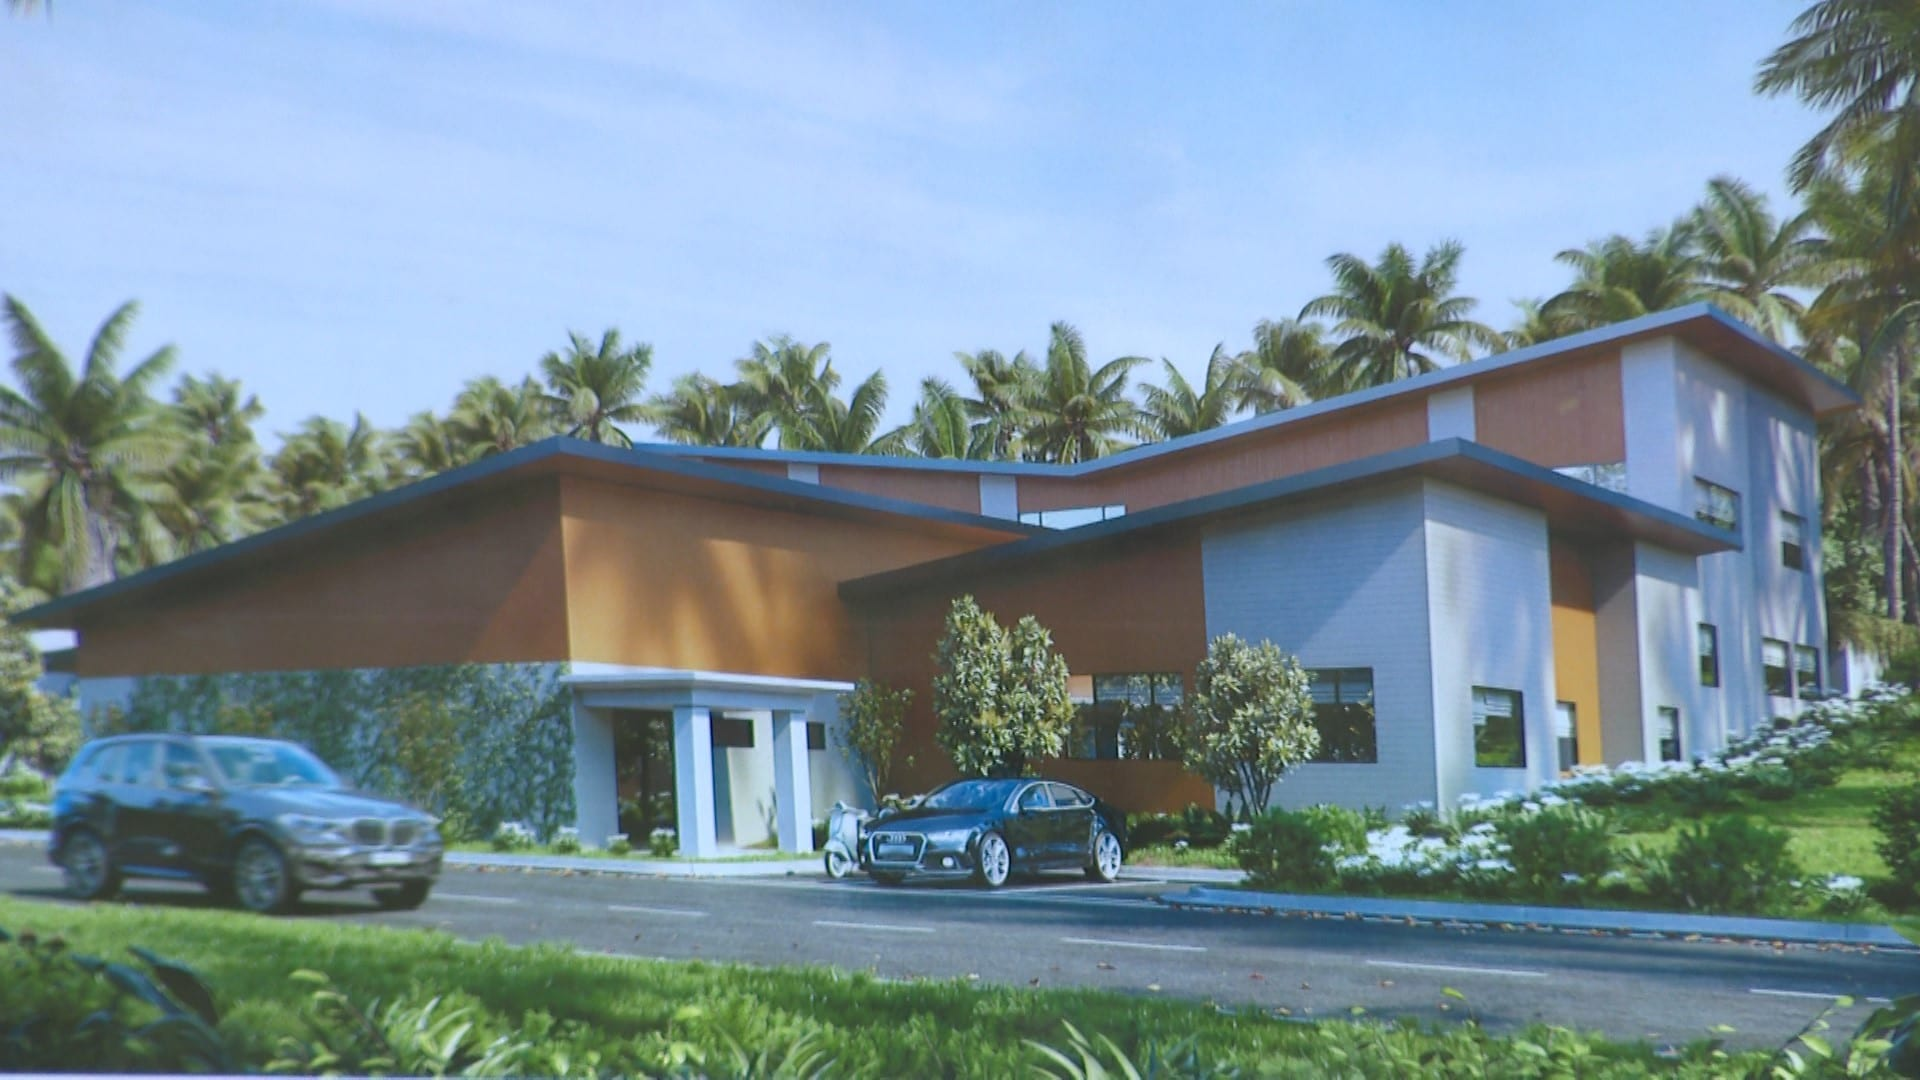 Construction of the new fale fono building at Halamahaga will begin from today following the official ground-breaking ceremony this morning.  The Premier Sir Toke Talagi officiated at the site with a prayer…